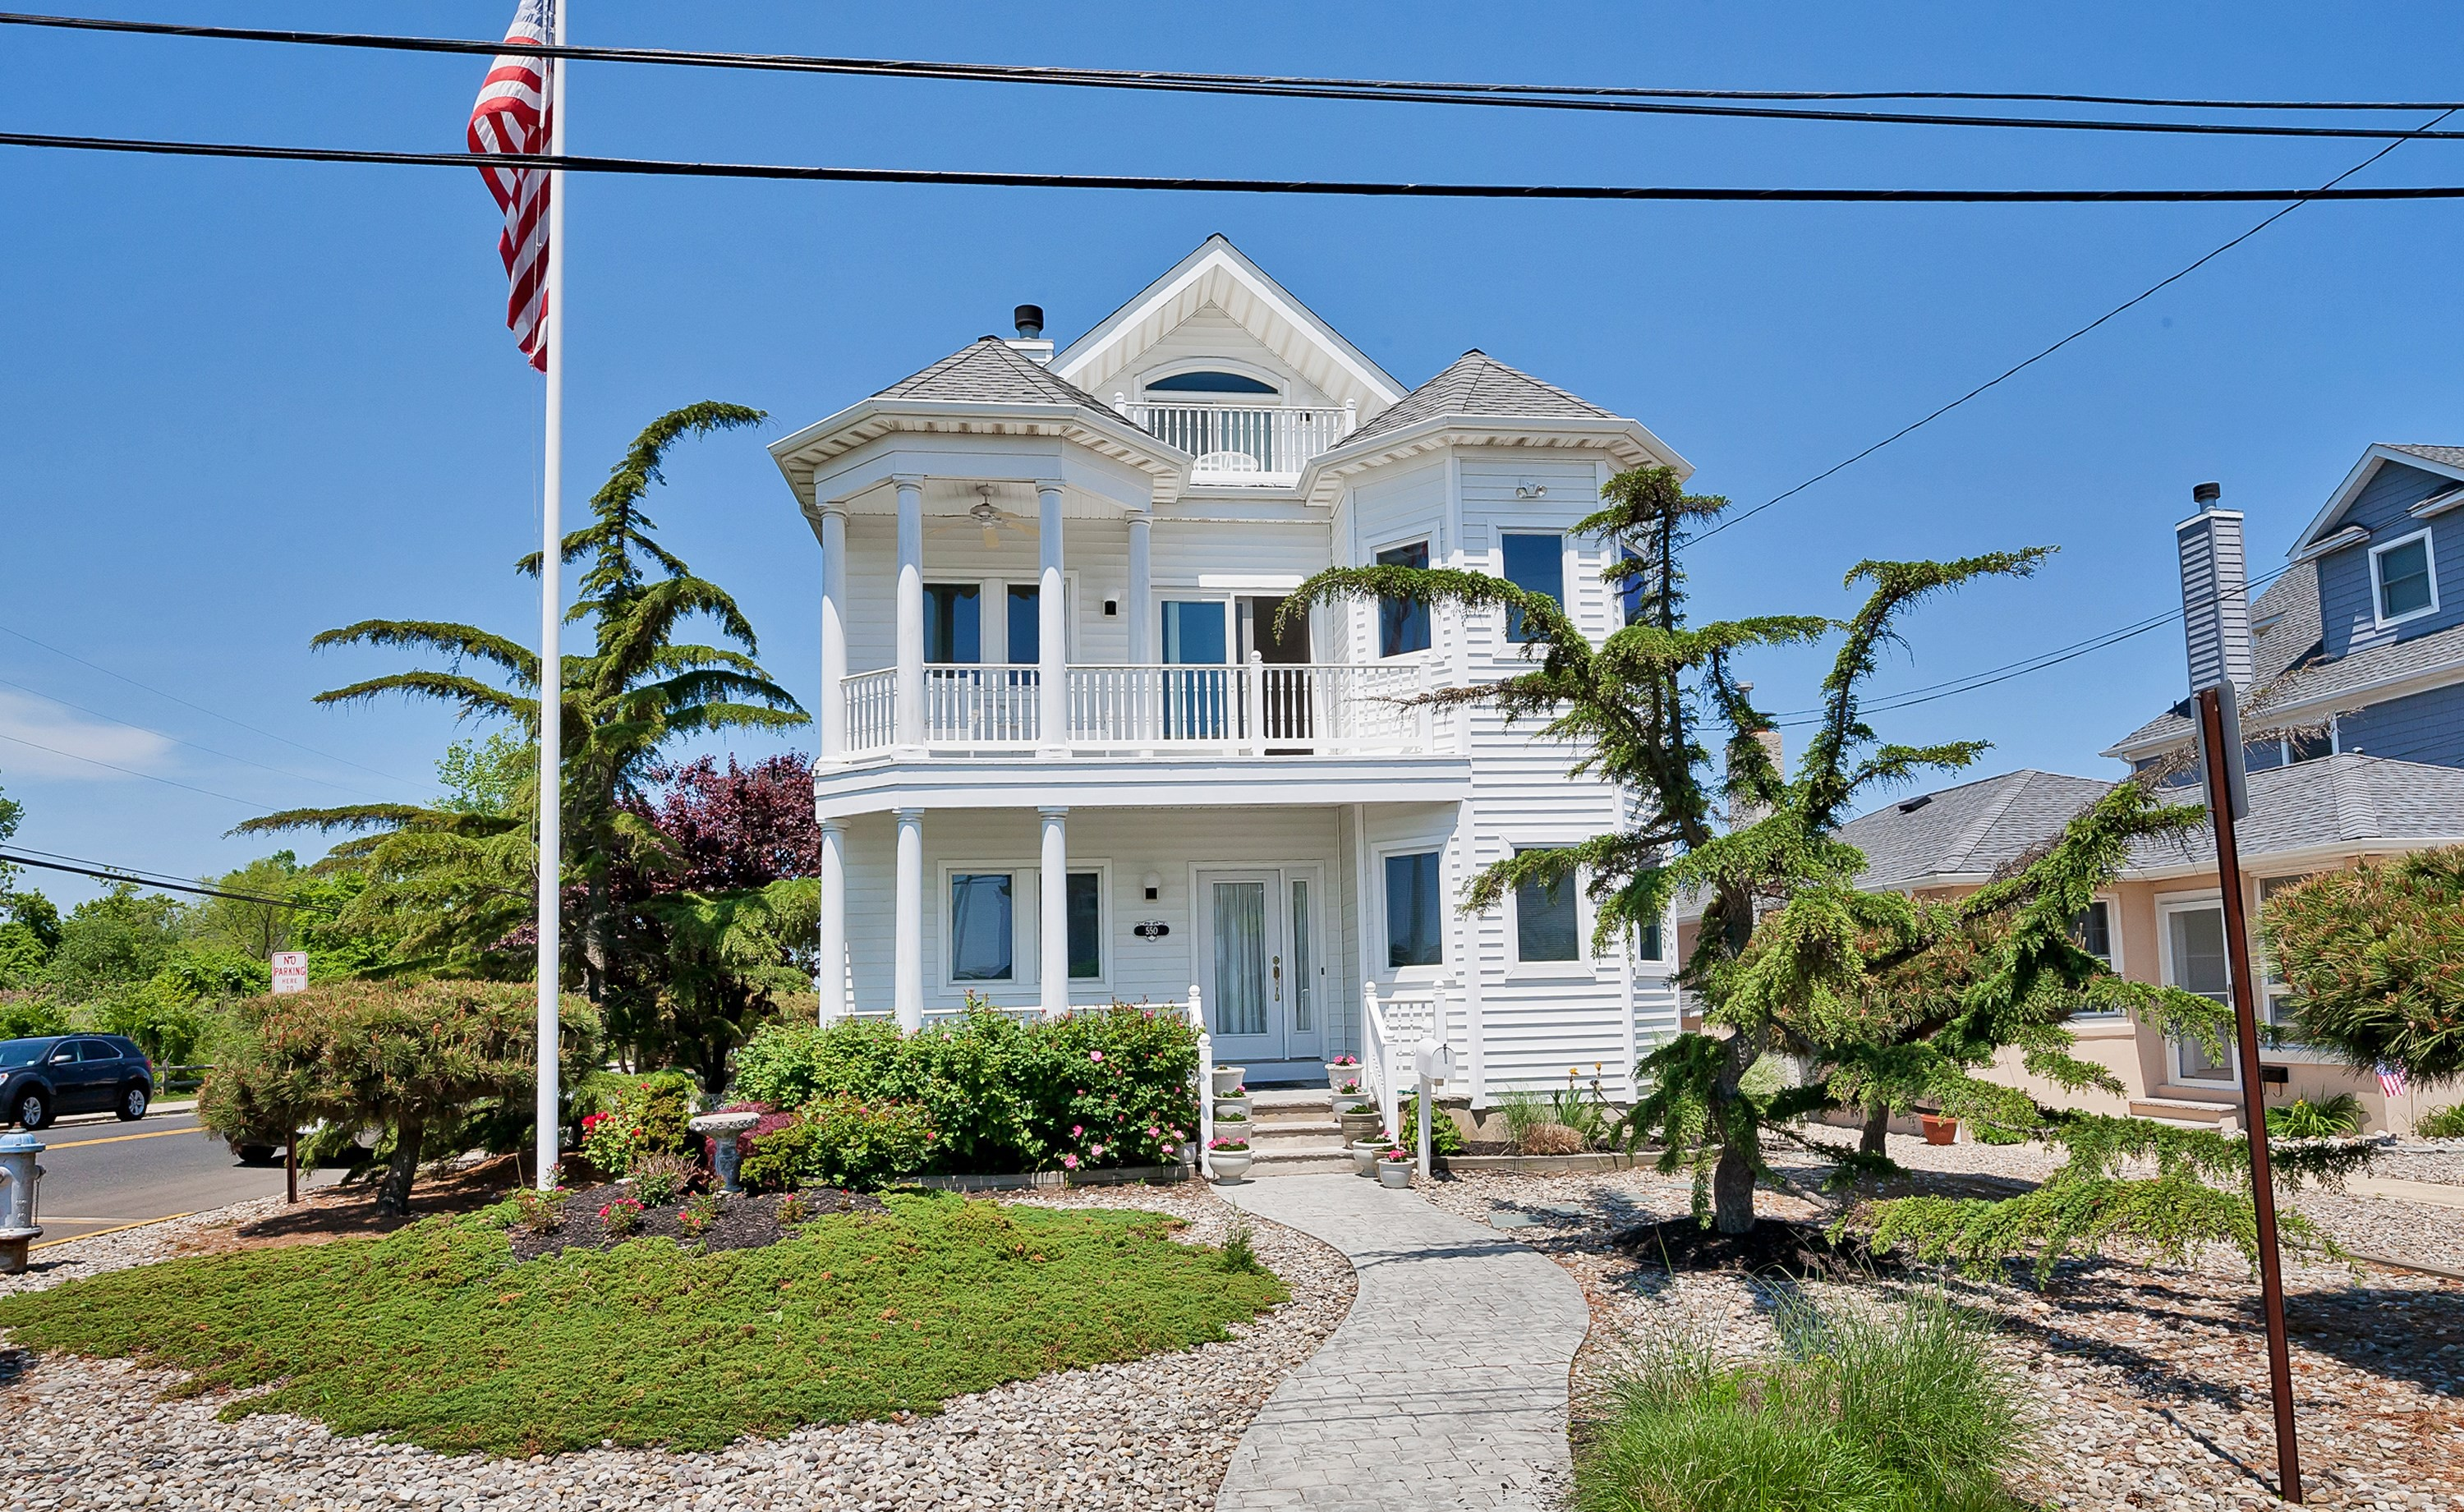 Single Family Home for Sale at Water View Galore 550 Pike Ave Manasquan, New Jersey 08736 United States